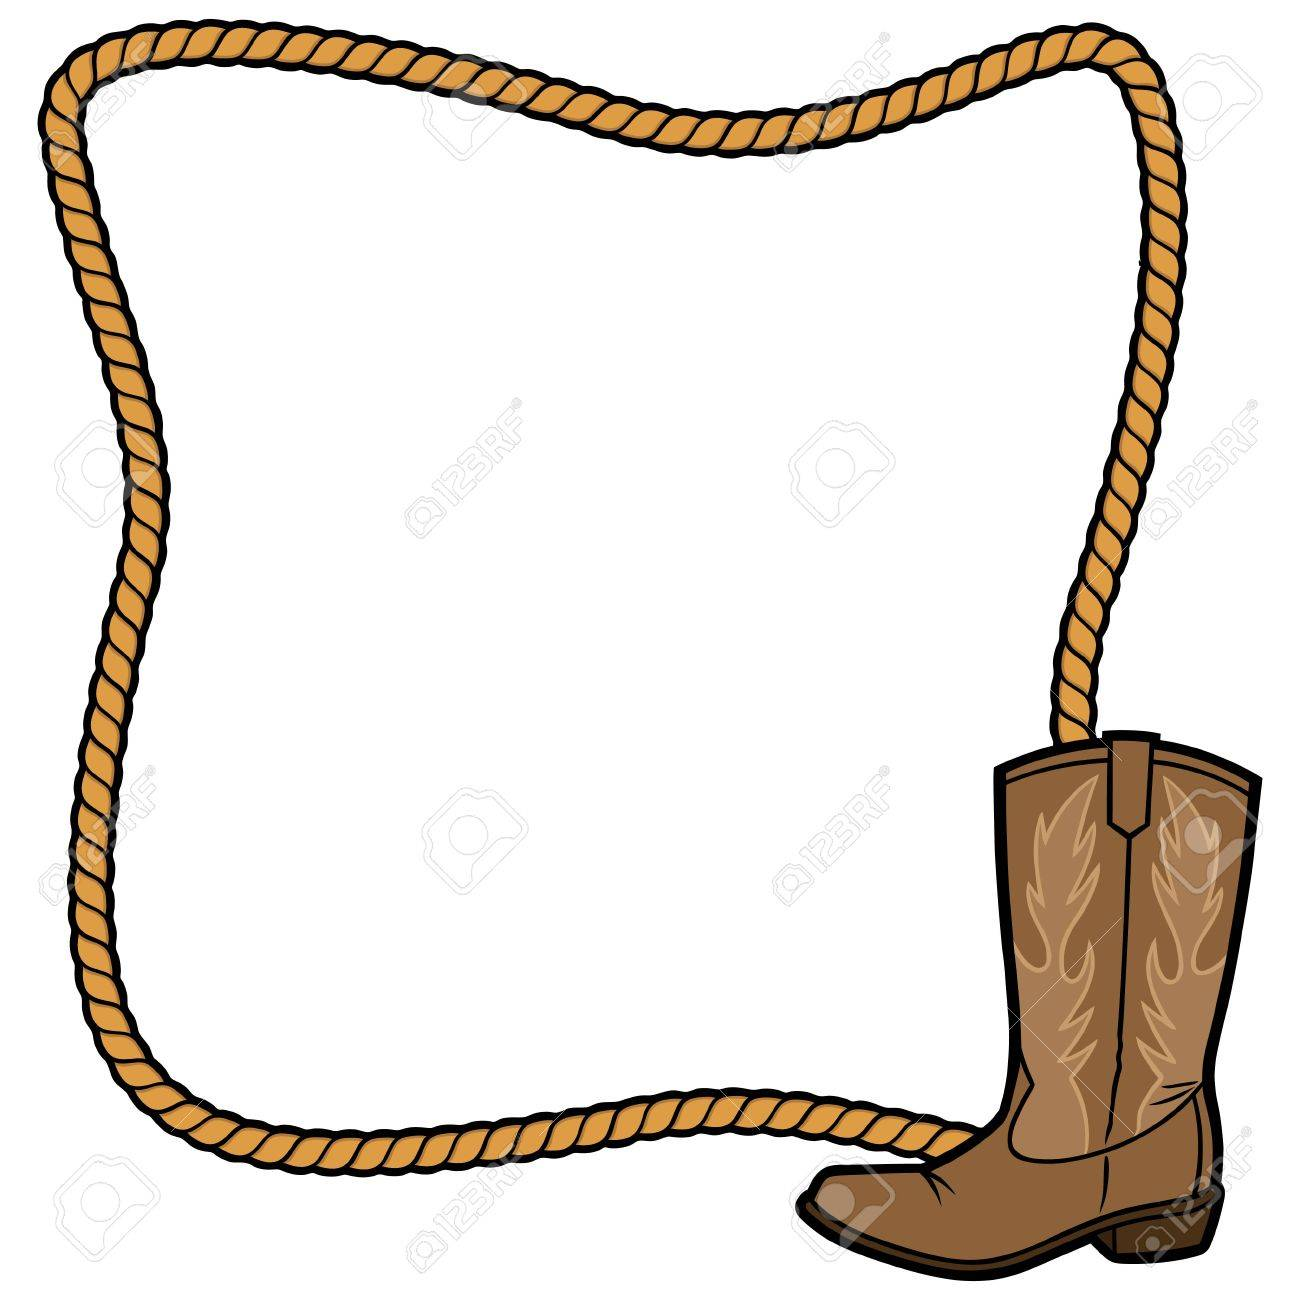 Rope Frame and Cowboy Boot.